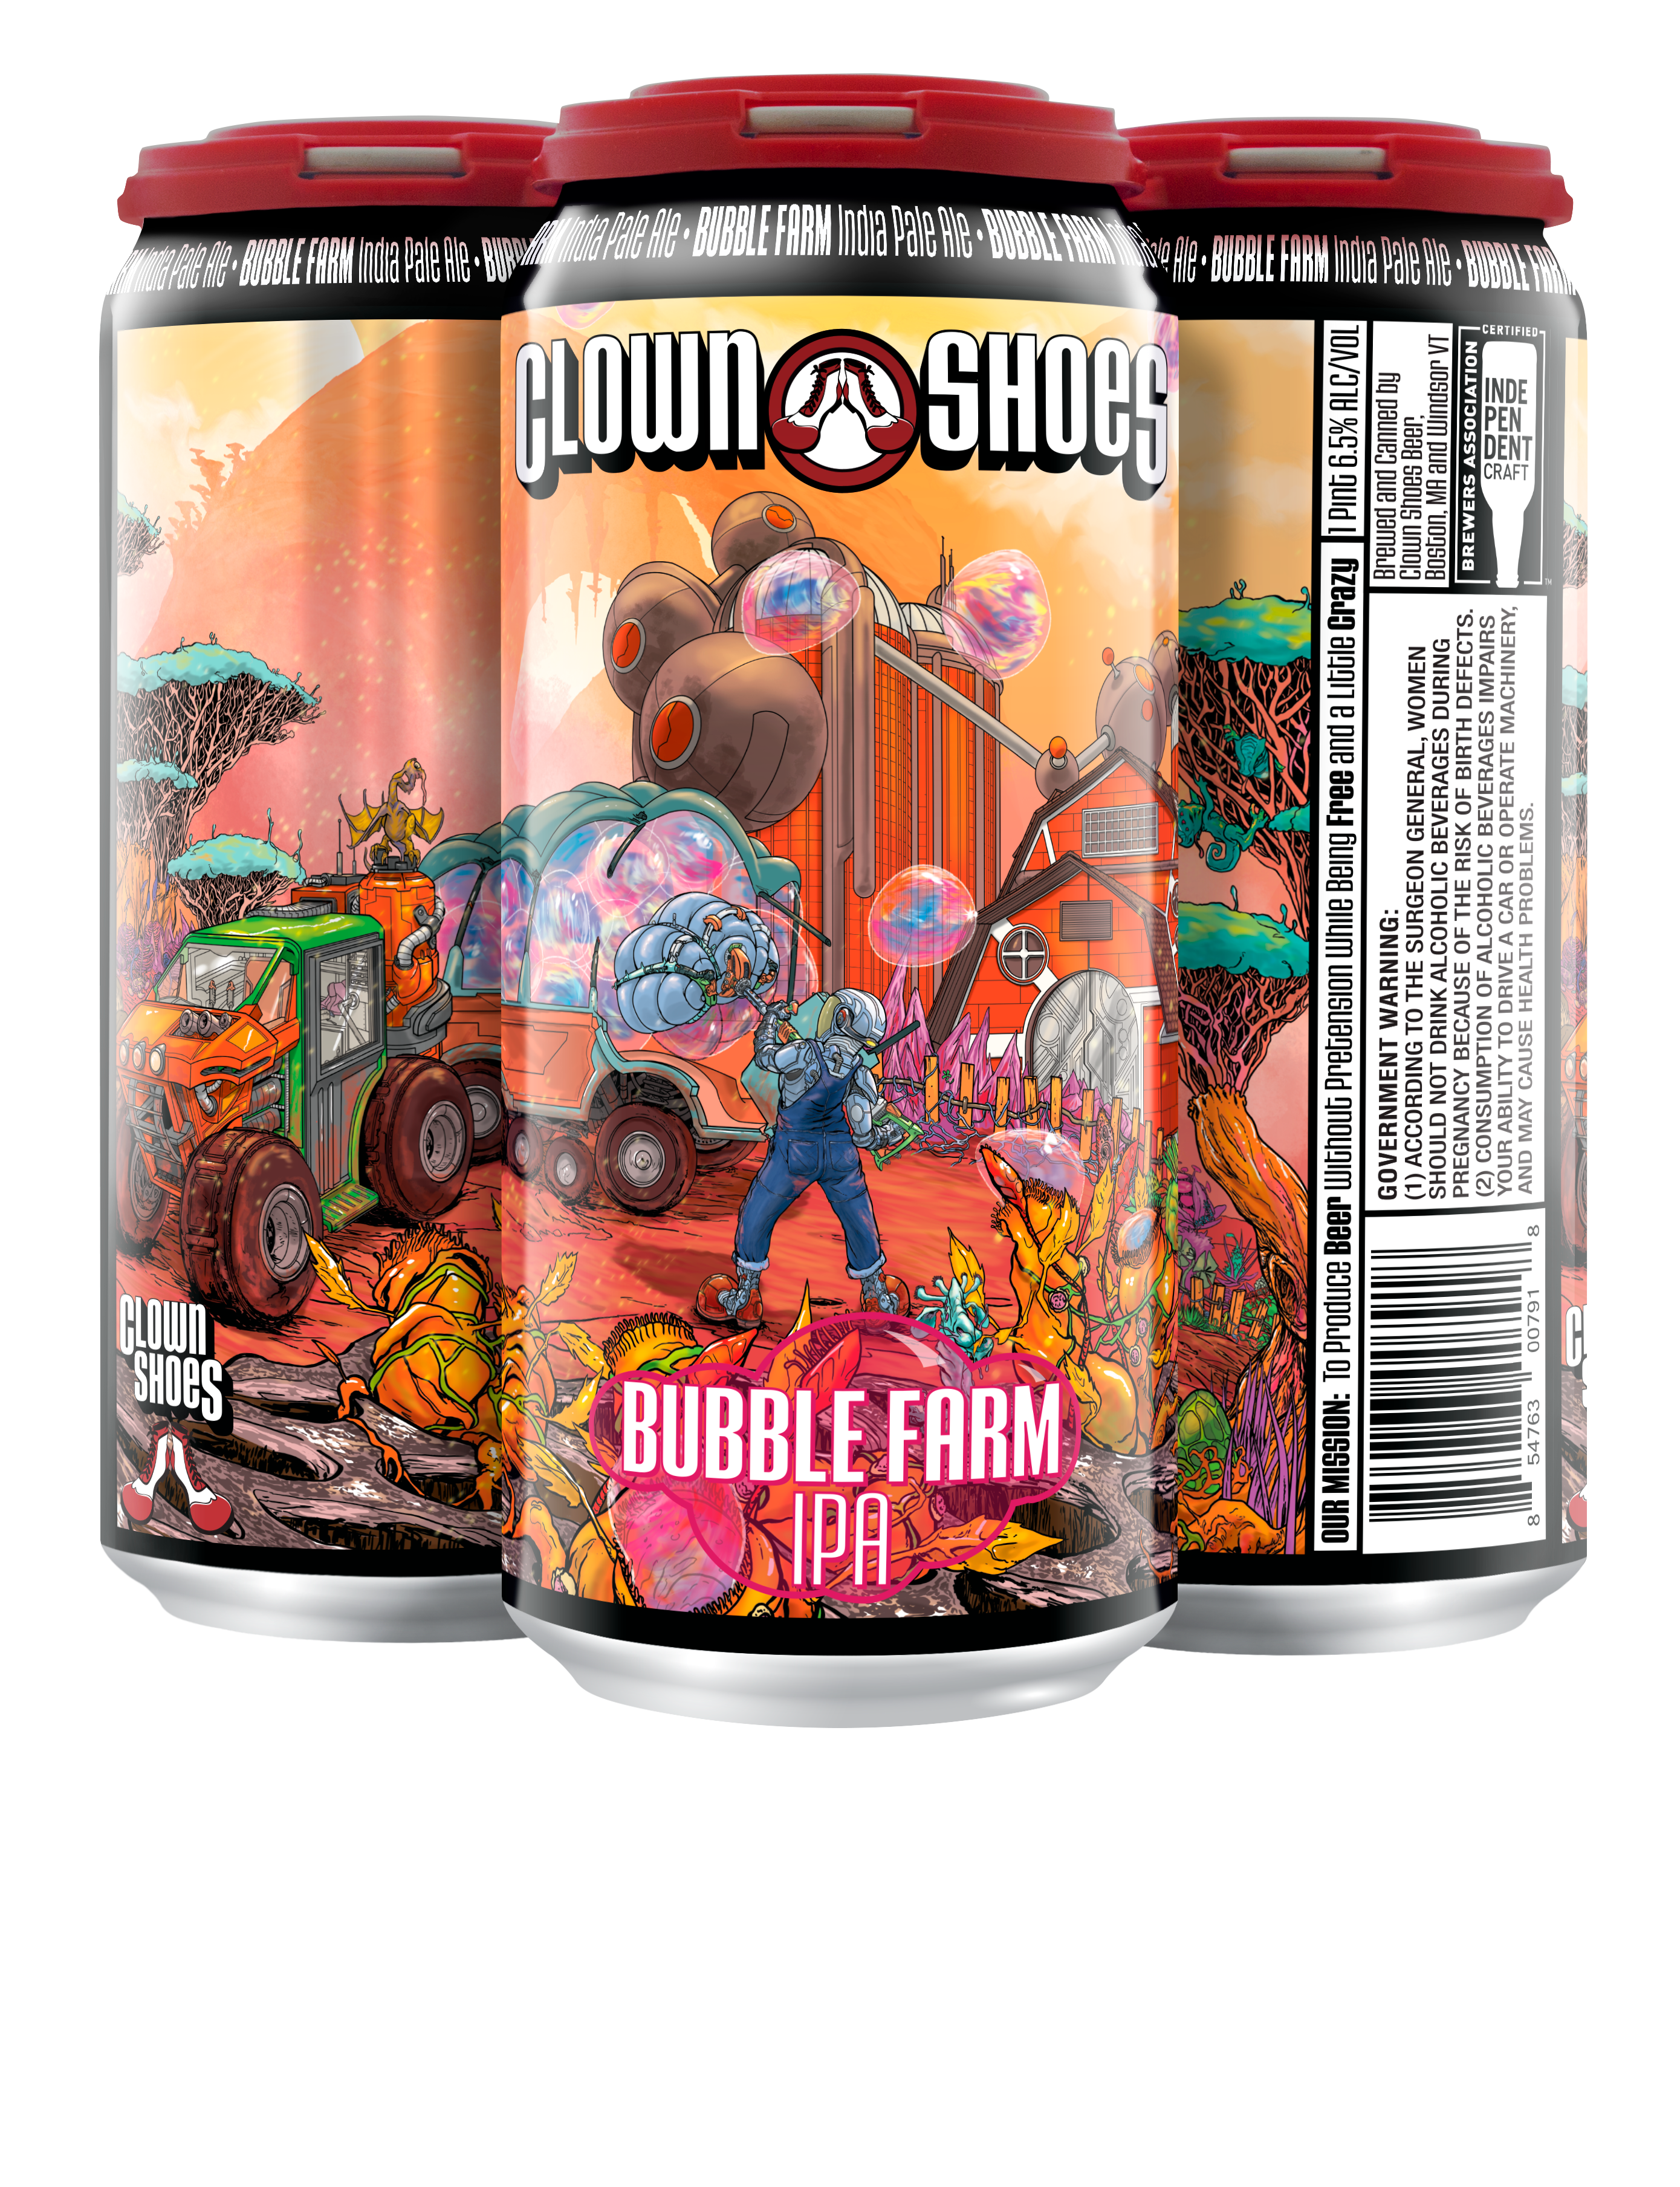 Bubble Farm 16oz 4-pack can